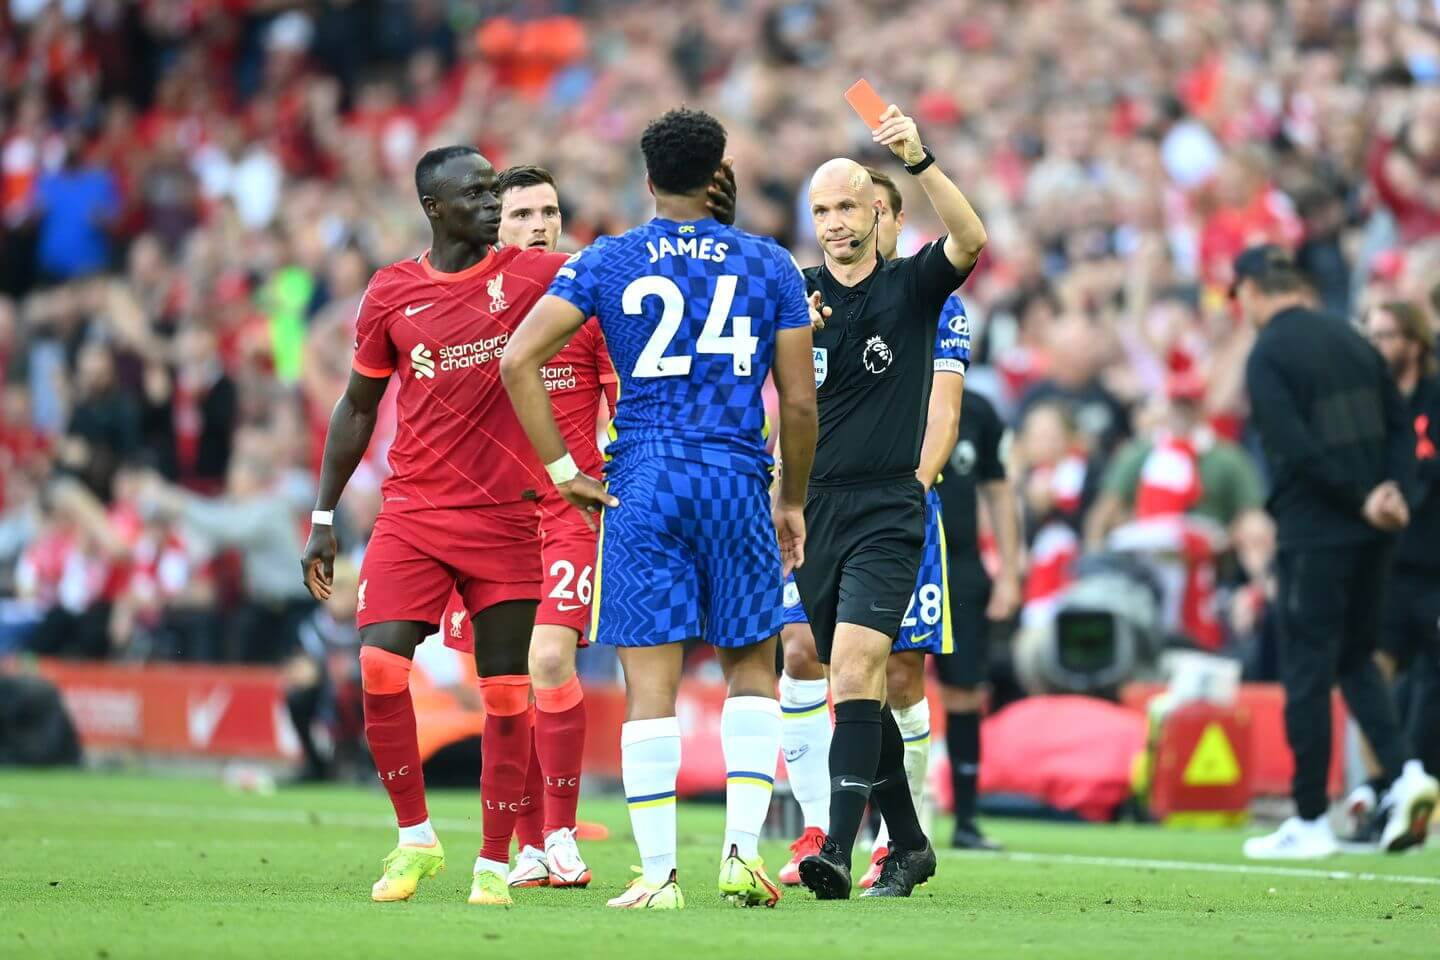 Liverpool vs Chelsea score and result live updates: Premier League game latest, team news and where to watch